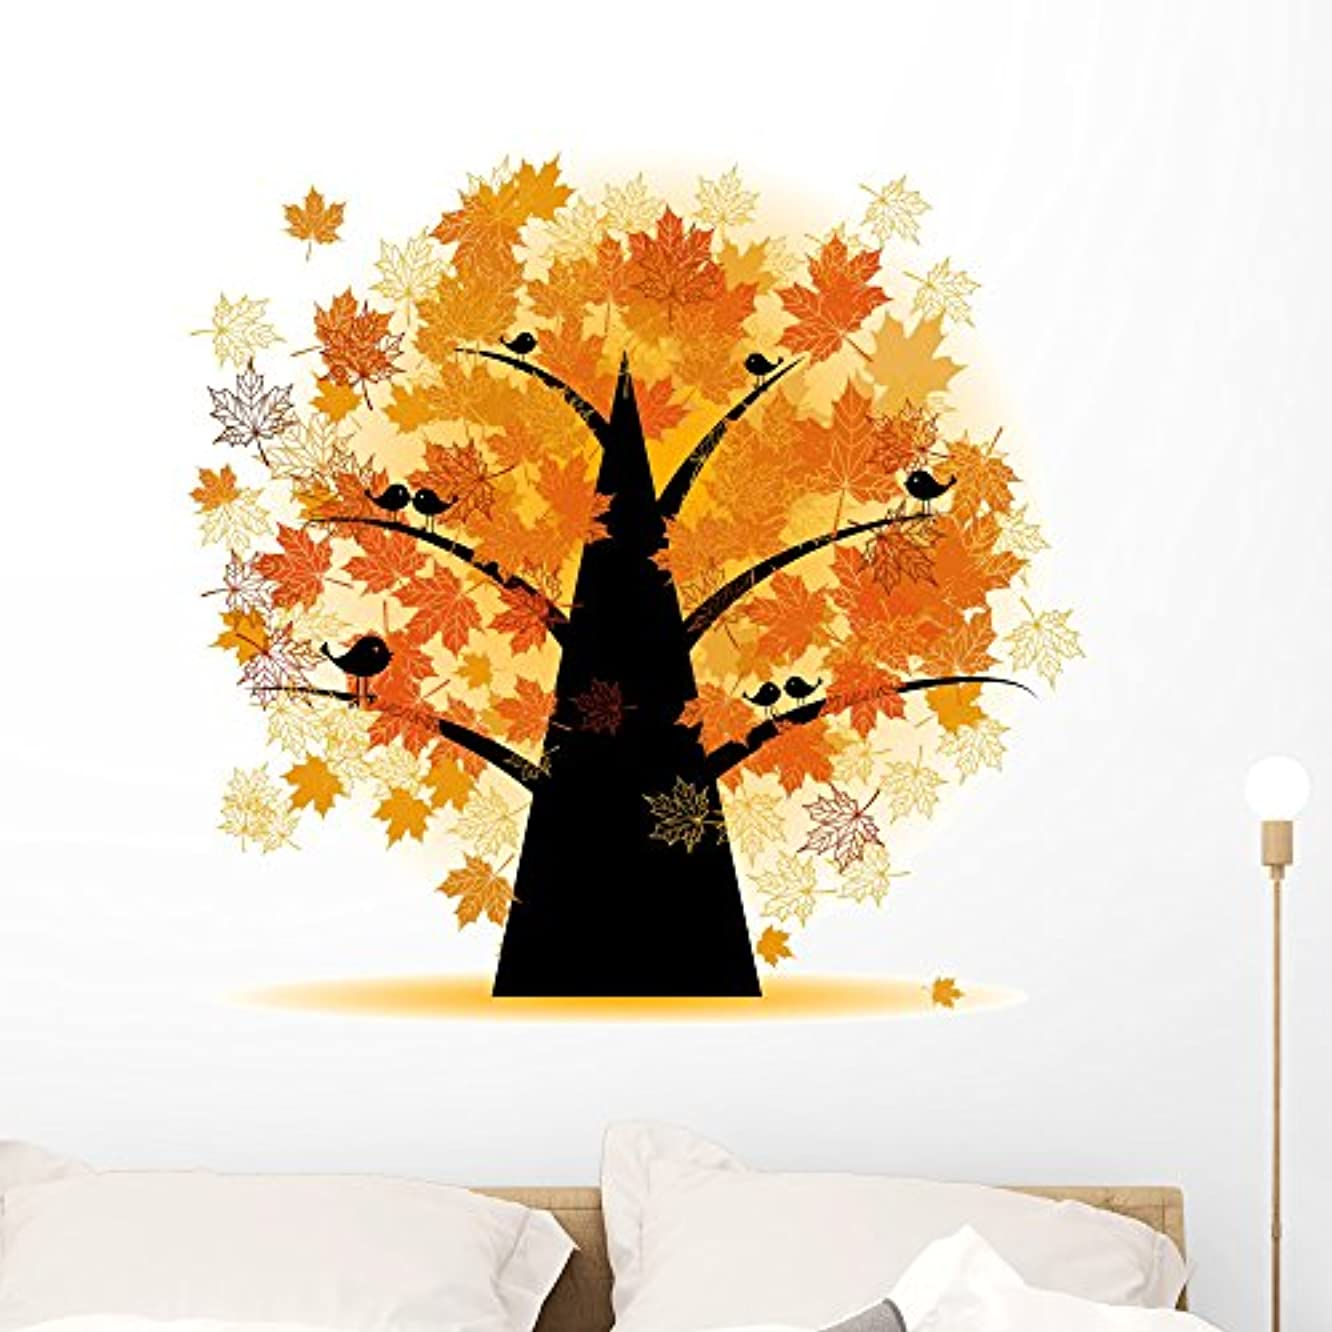 Wallmonkeys Maple Tree Autumn Leaf Wall Decal Peel and Stick Graphic (36 in H x 36 in W) WM2831